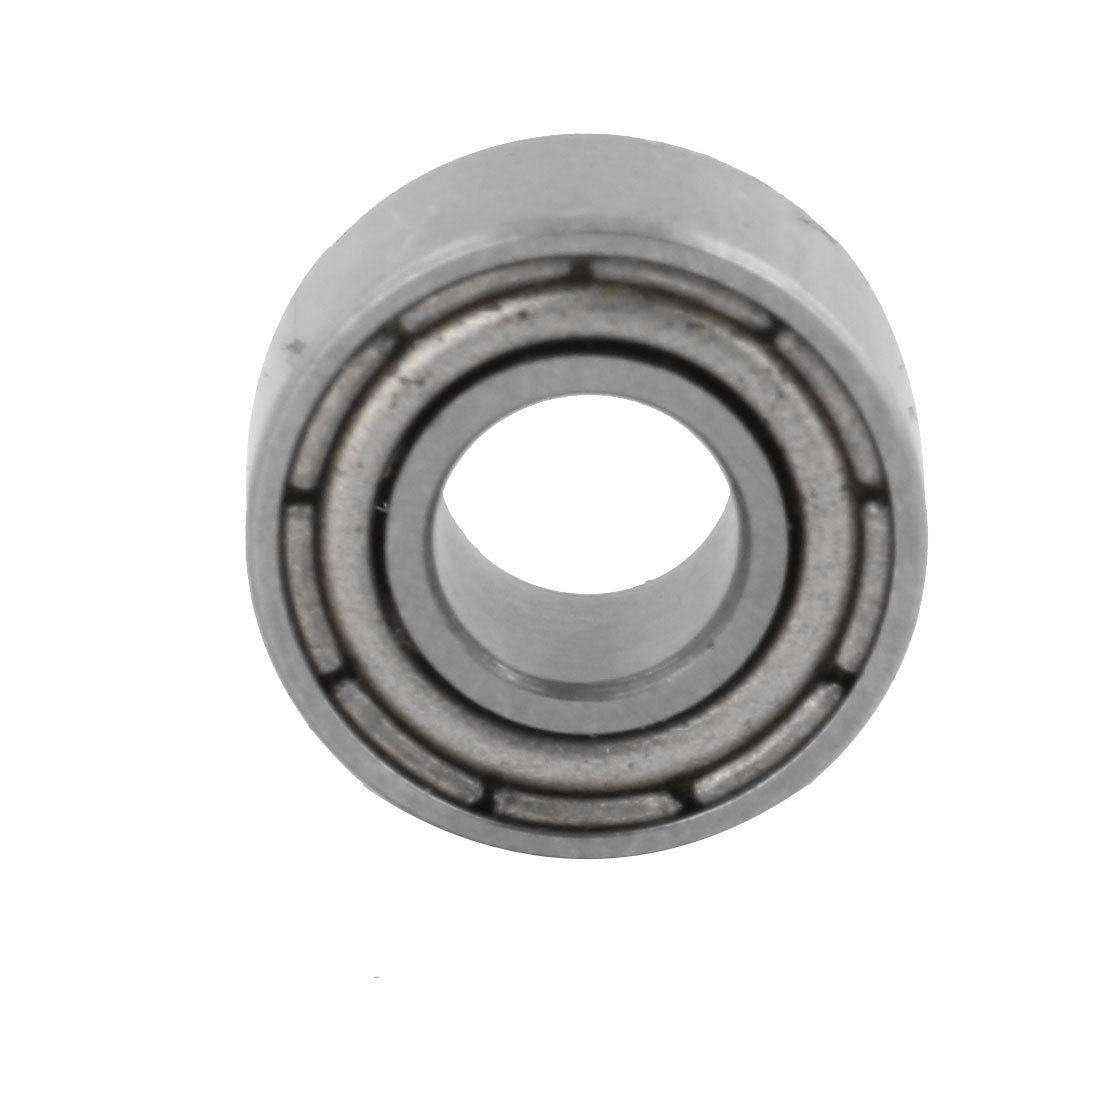 eDealMax 4mmx9mmx4mm sola Fila 2 blindado Diseño de ranura profunda Rolling Ball Bearing S684Z: Amazon.com: Industrial & Scientific